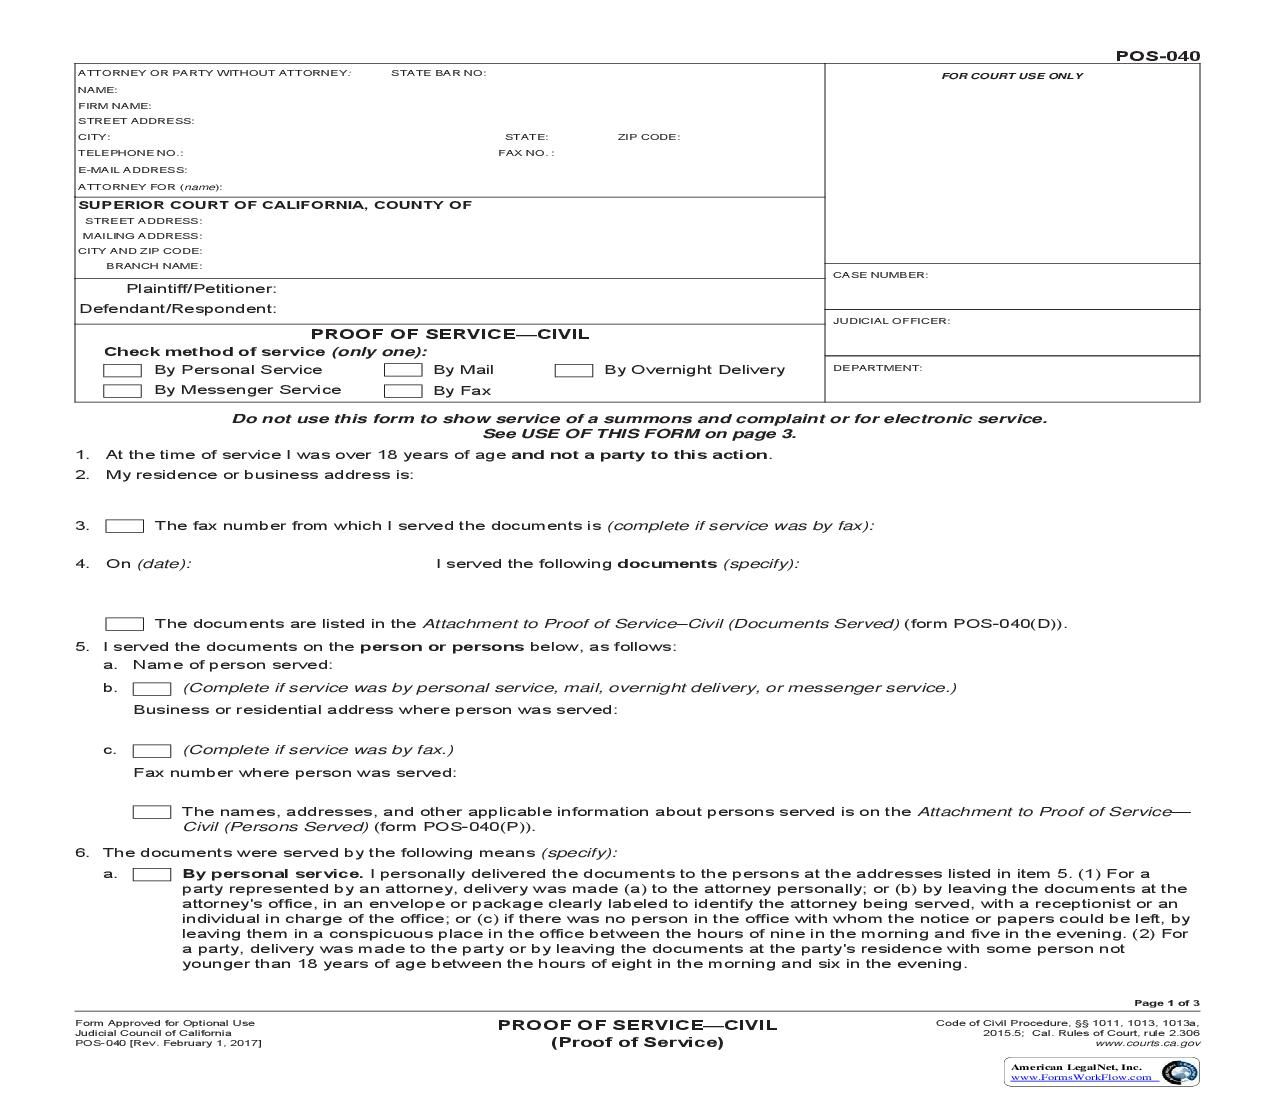 This is a California form that can be used for Proof Of